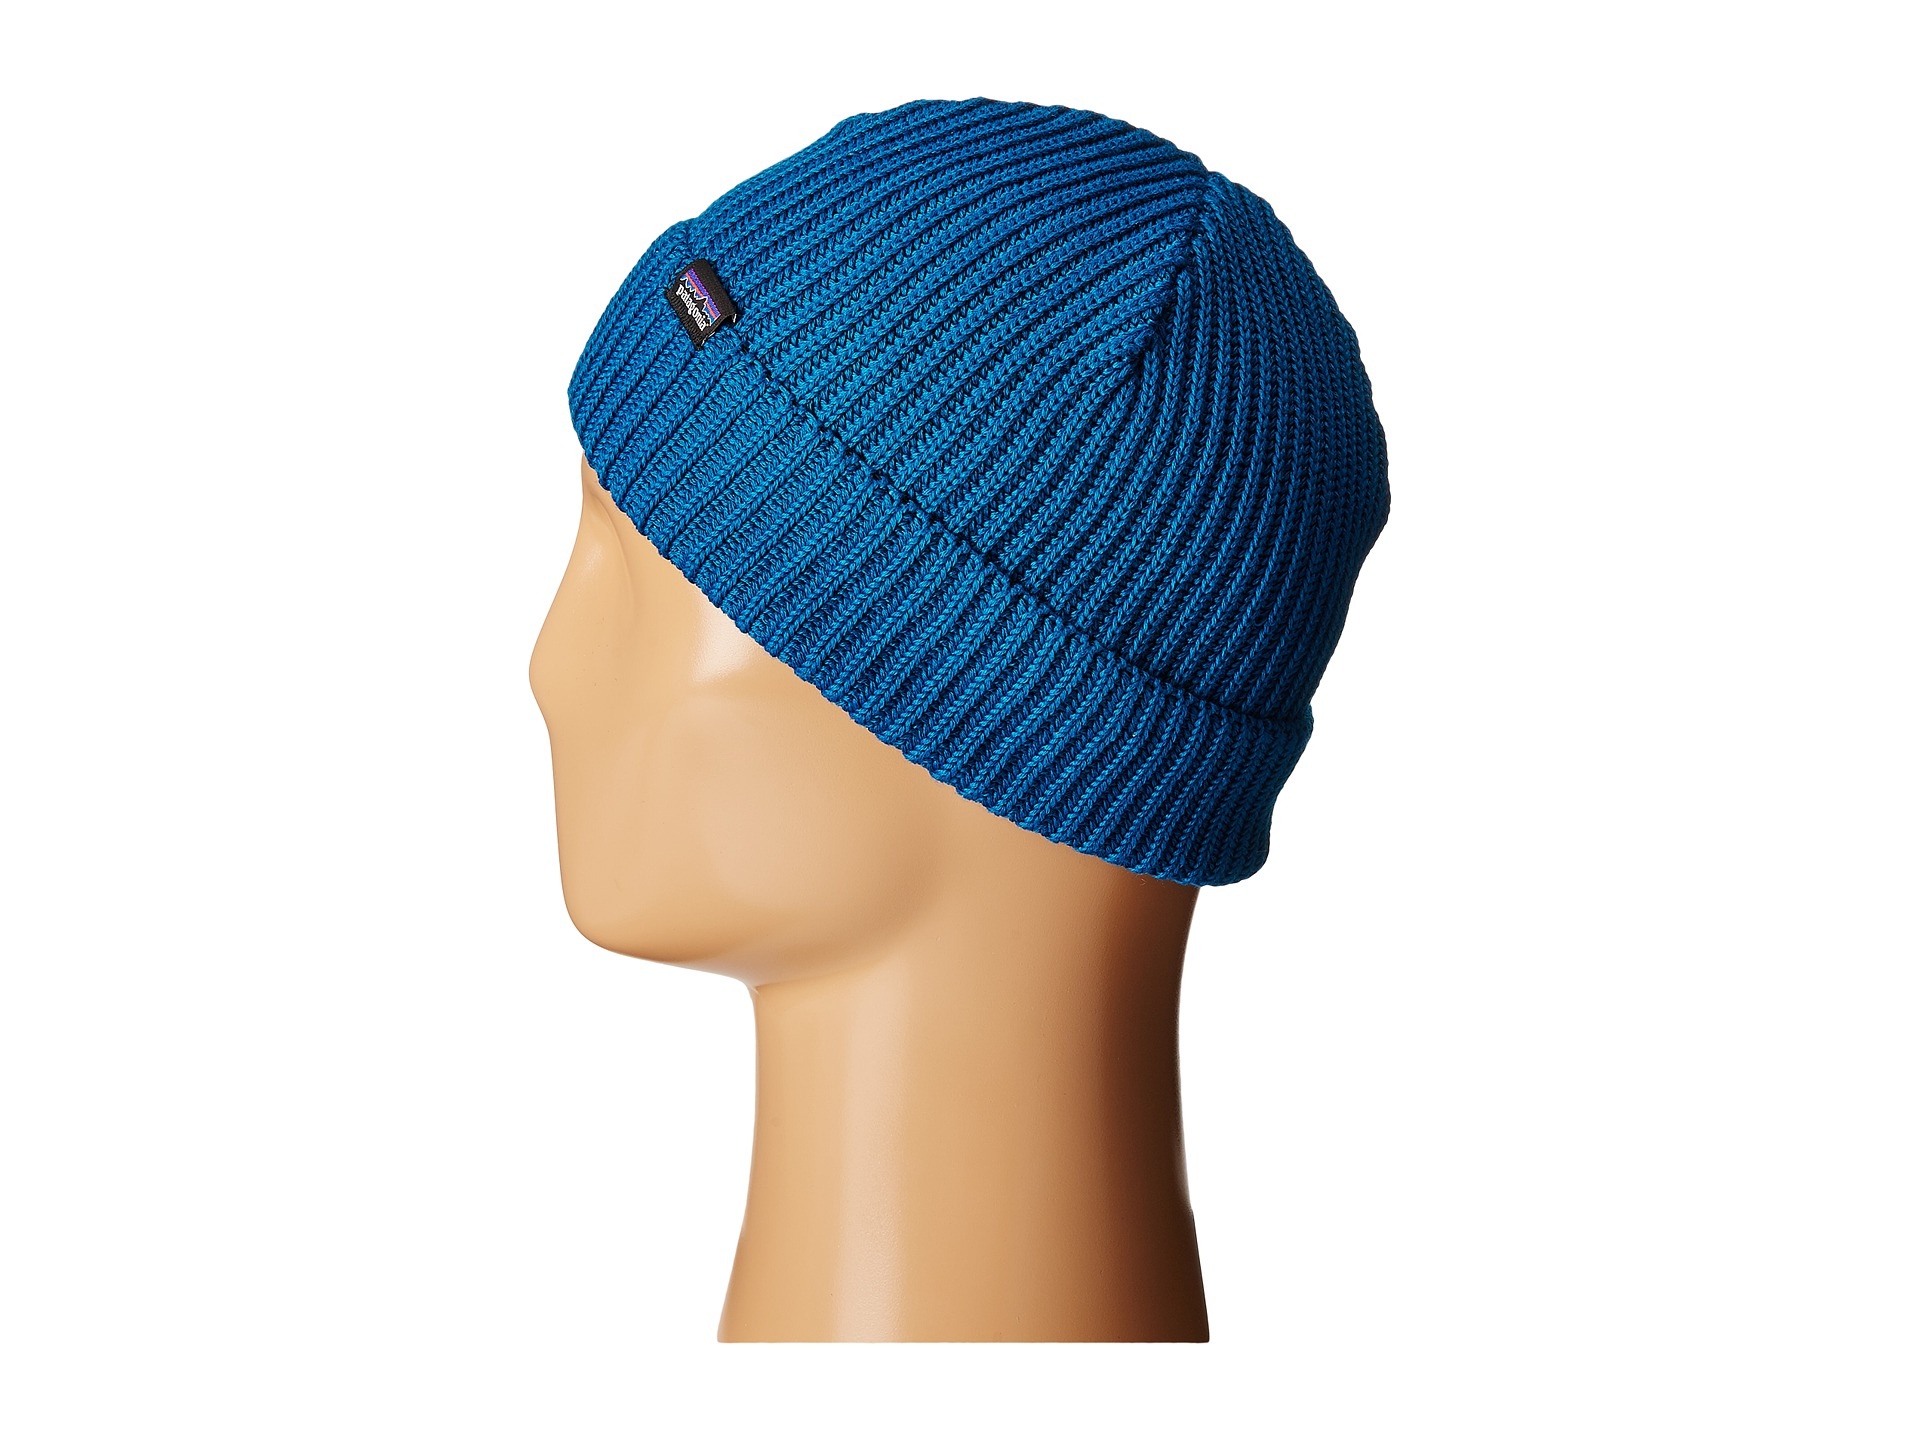 Lyst - Patagonia Fishermans Rolled Beanie in Blue for Men 8347bc3e27f